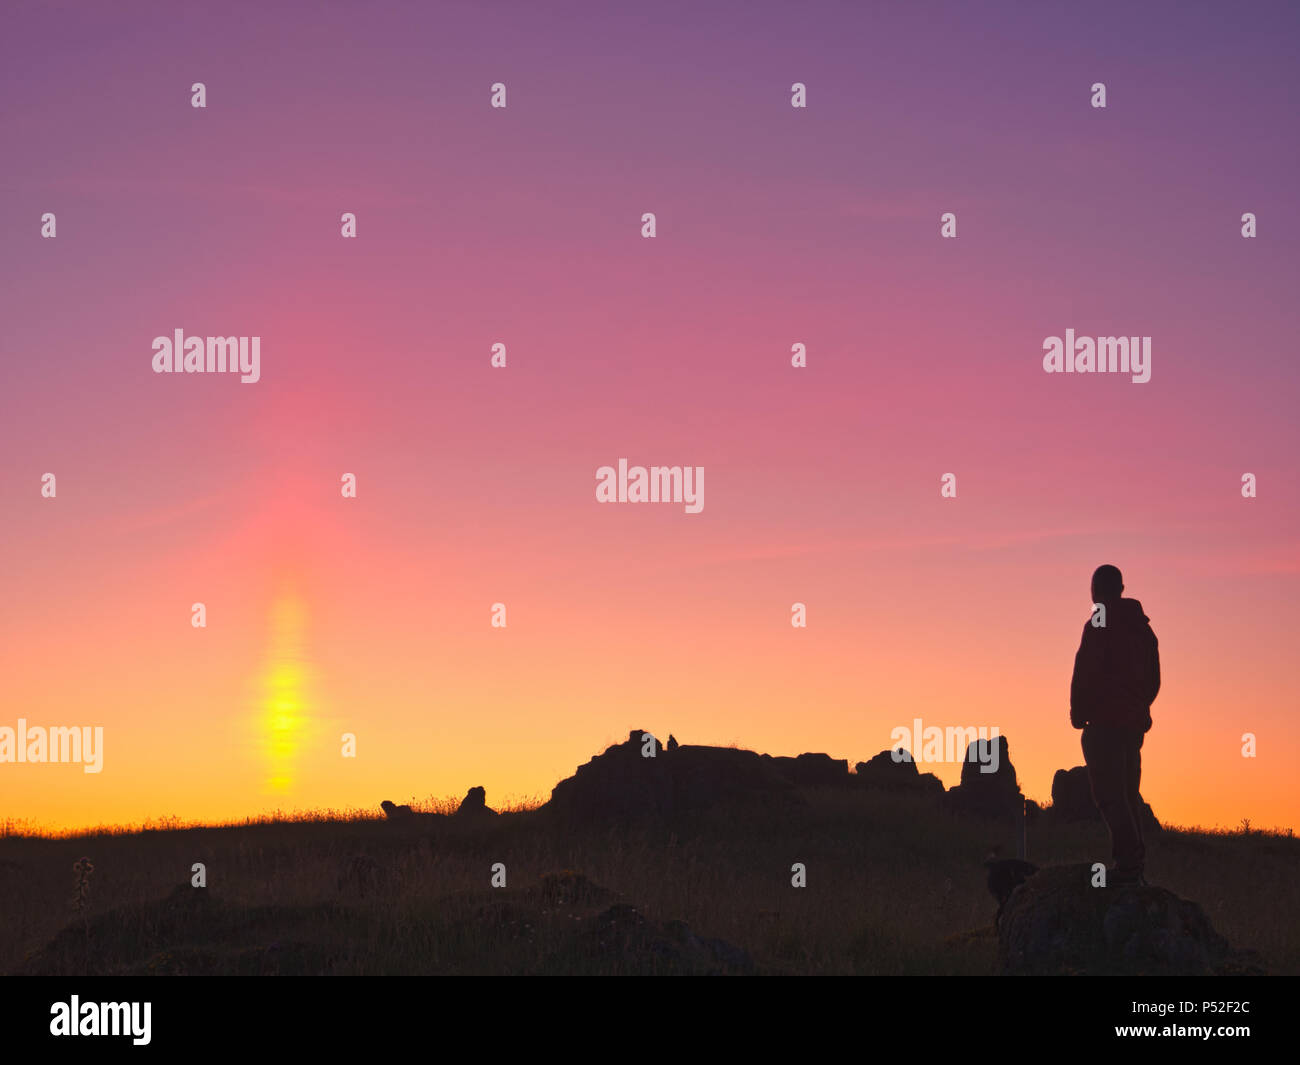 Brassington, Derbyshire, UK. 24th June, 2018. Weather UK: person watching the sun pillar solar column during an amazing sunset at Harborough Rocks near Brassington & the High Peak Trail, Derbyshire, Peak District National Park Credit: Doug Blane/Alamy Live News - Stock Image